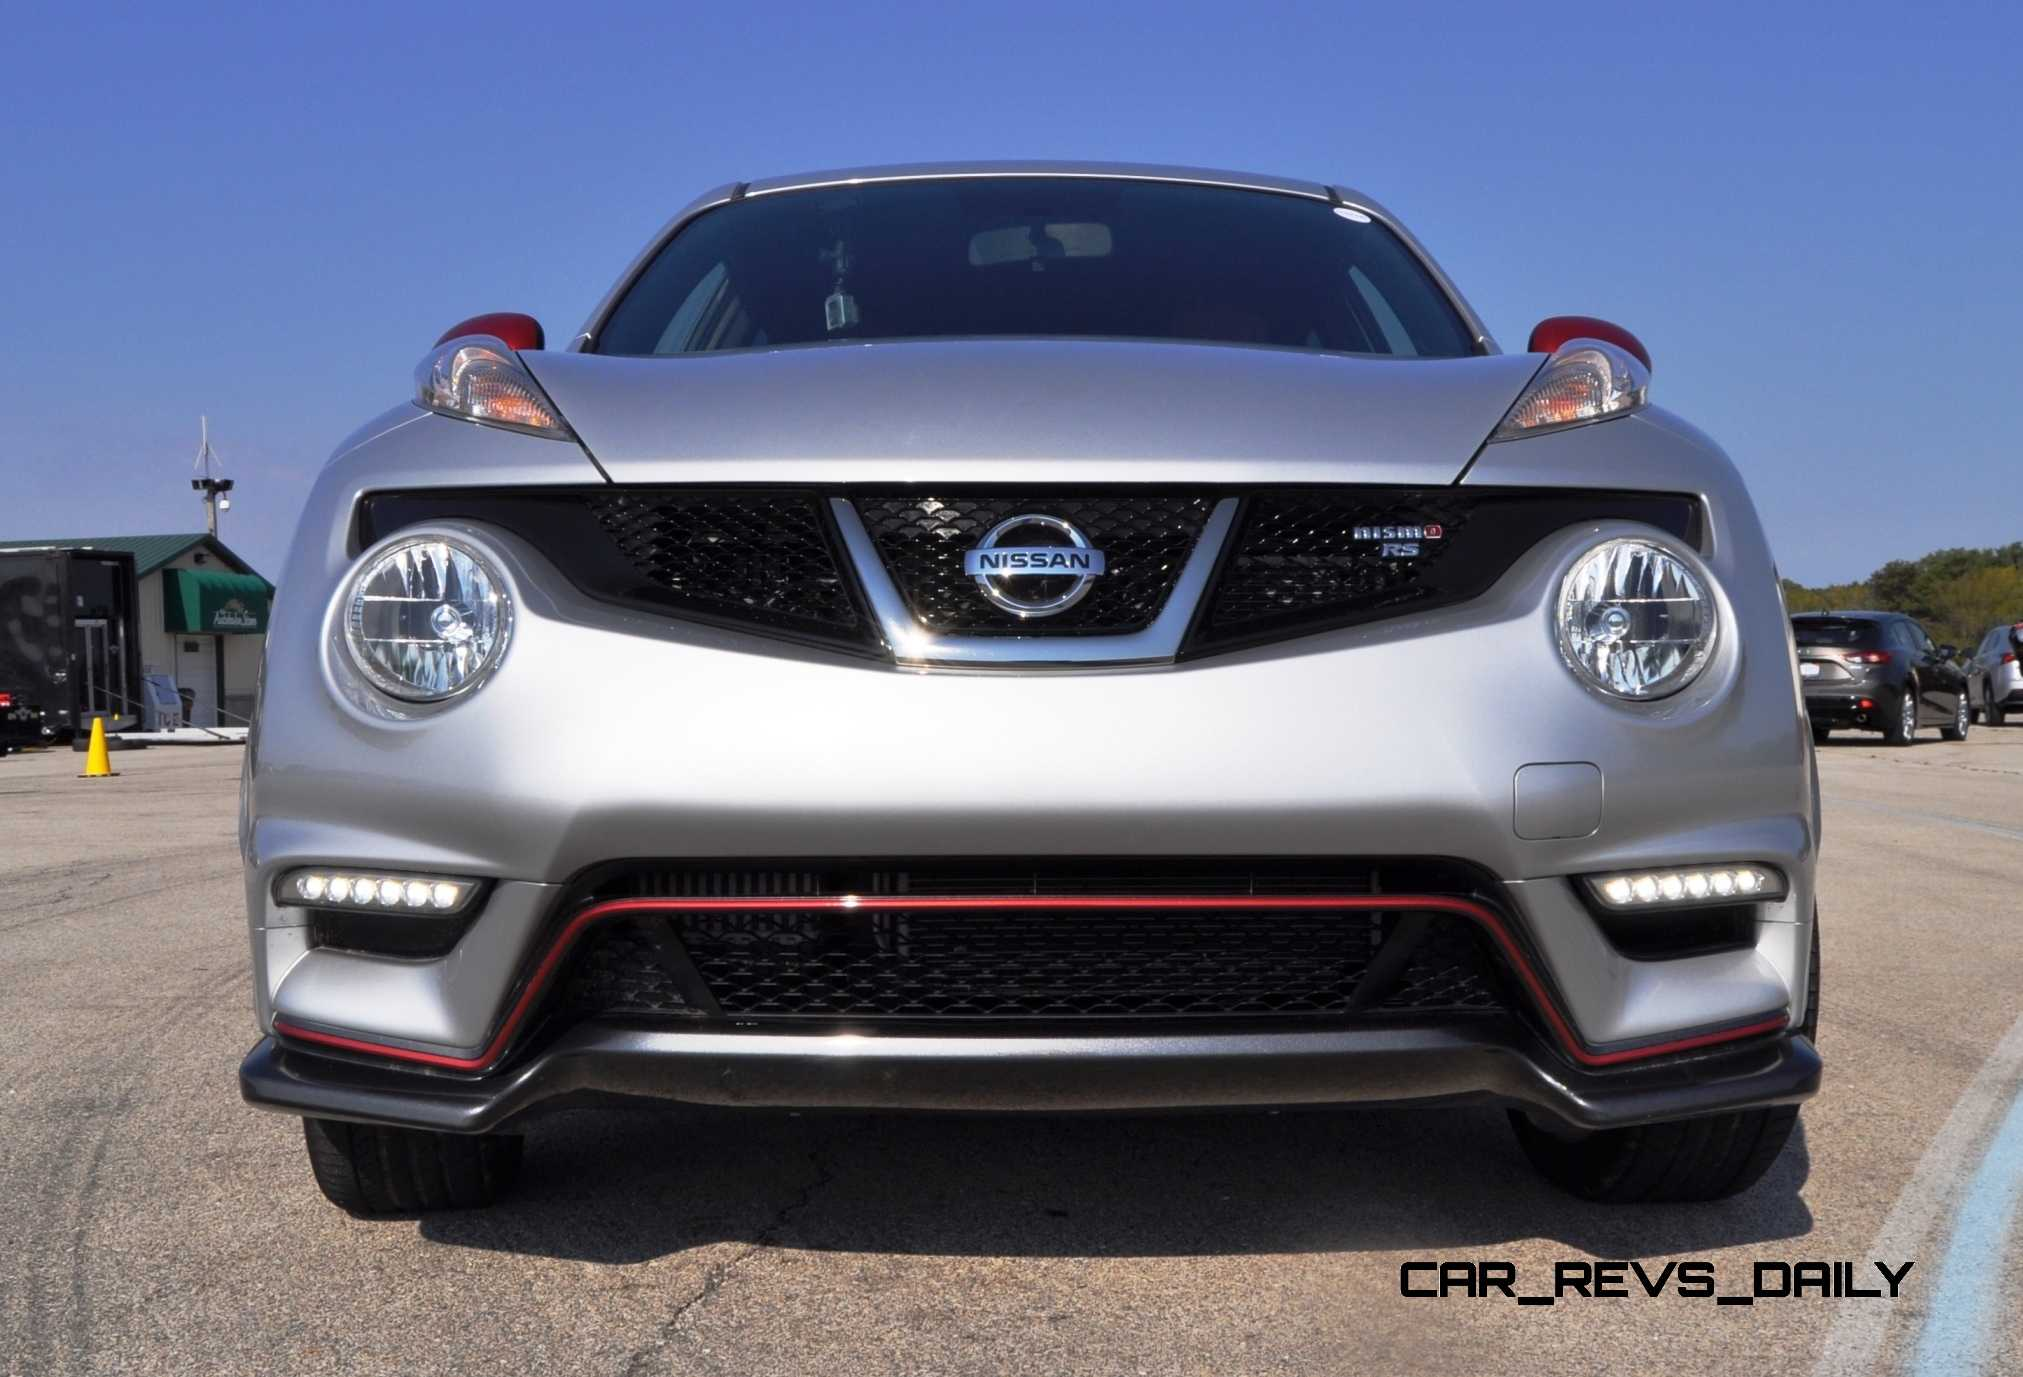 track drive review 2014 nissan juke nismo rs manual is hard work but good fun chasing supercars. Black Bedroom Furniture Sets. Home Design Ideas